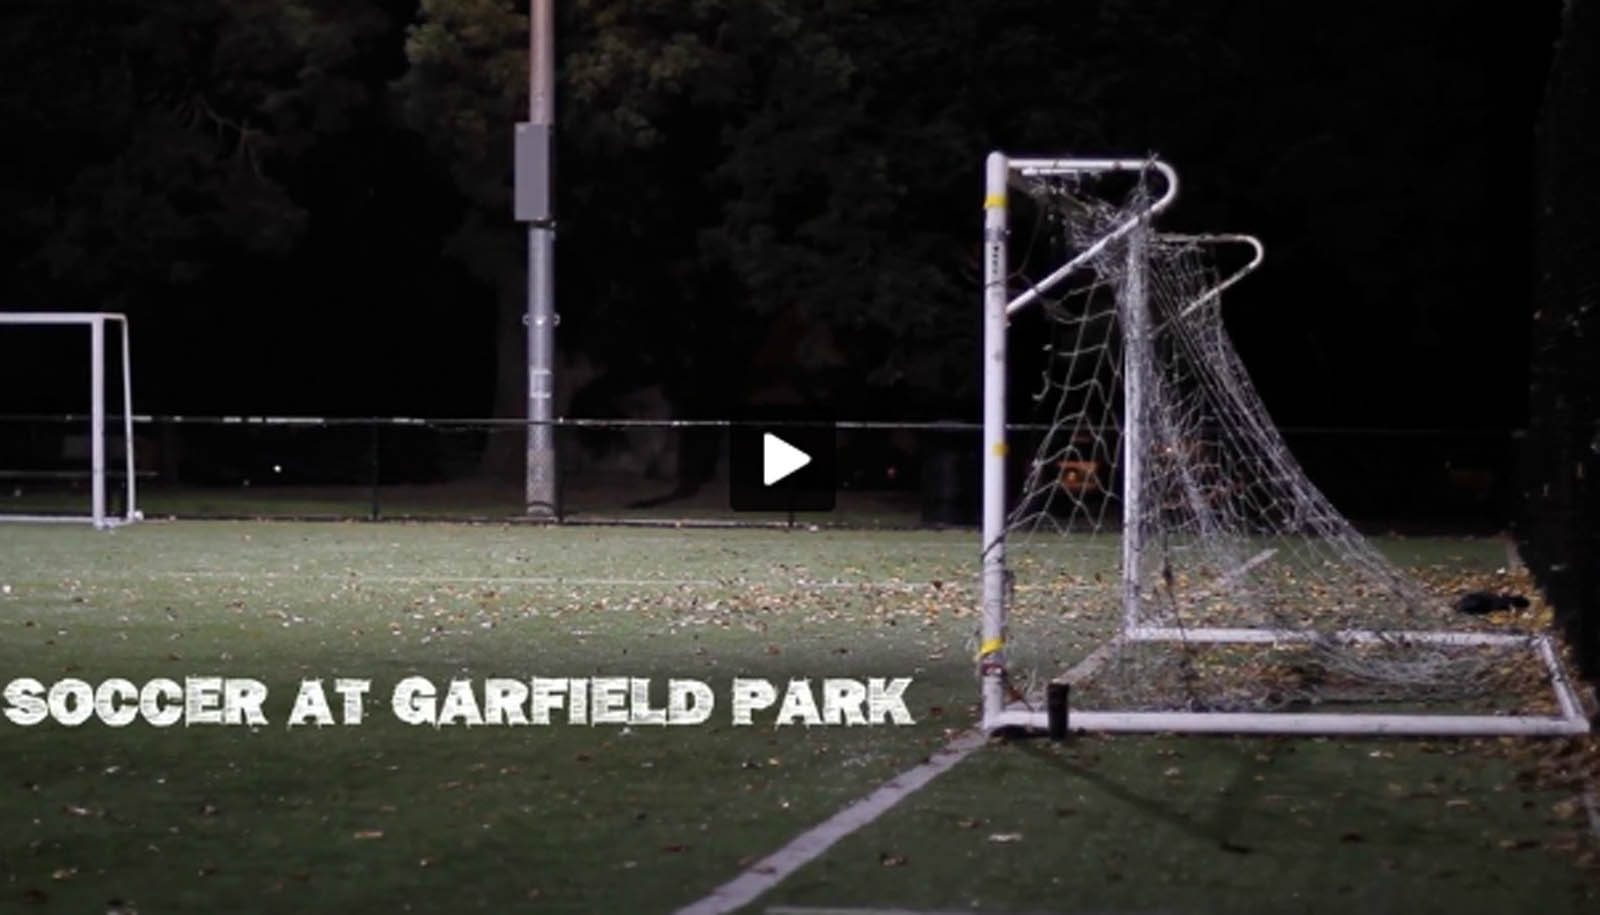 Garfield Park Monday Nights: The U.N. of Soccer